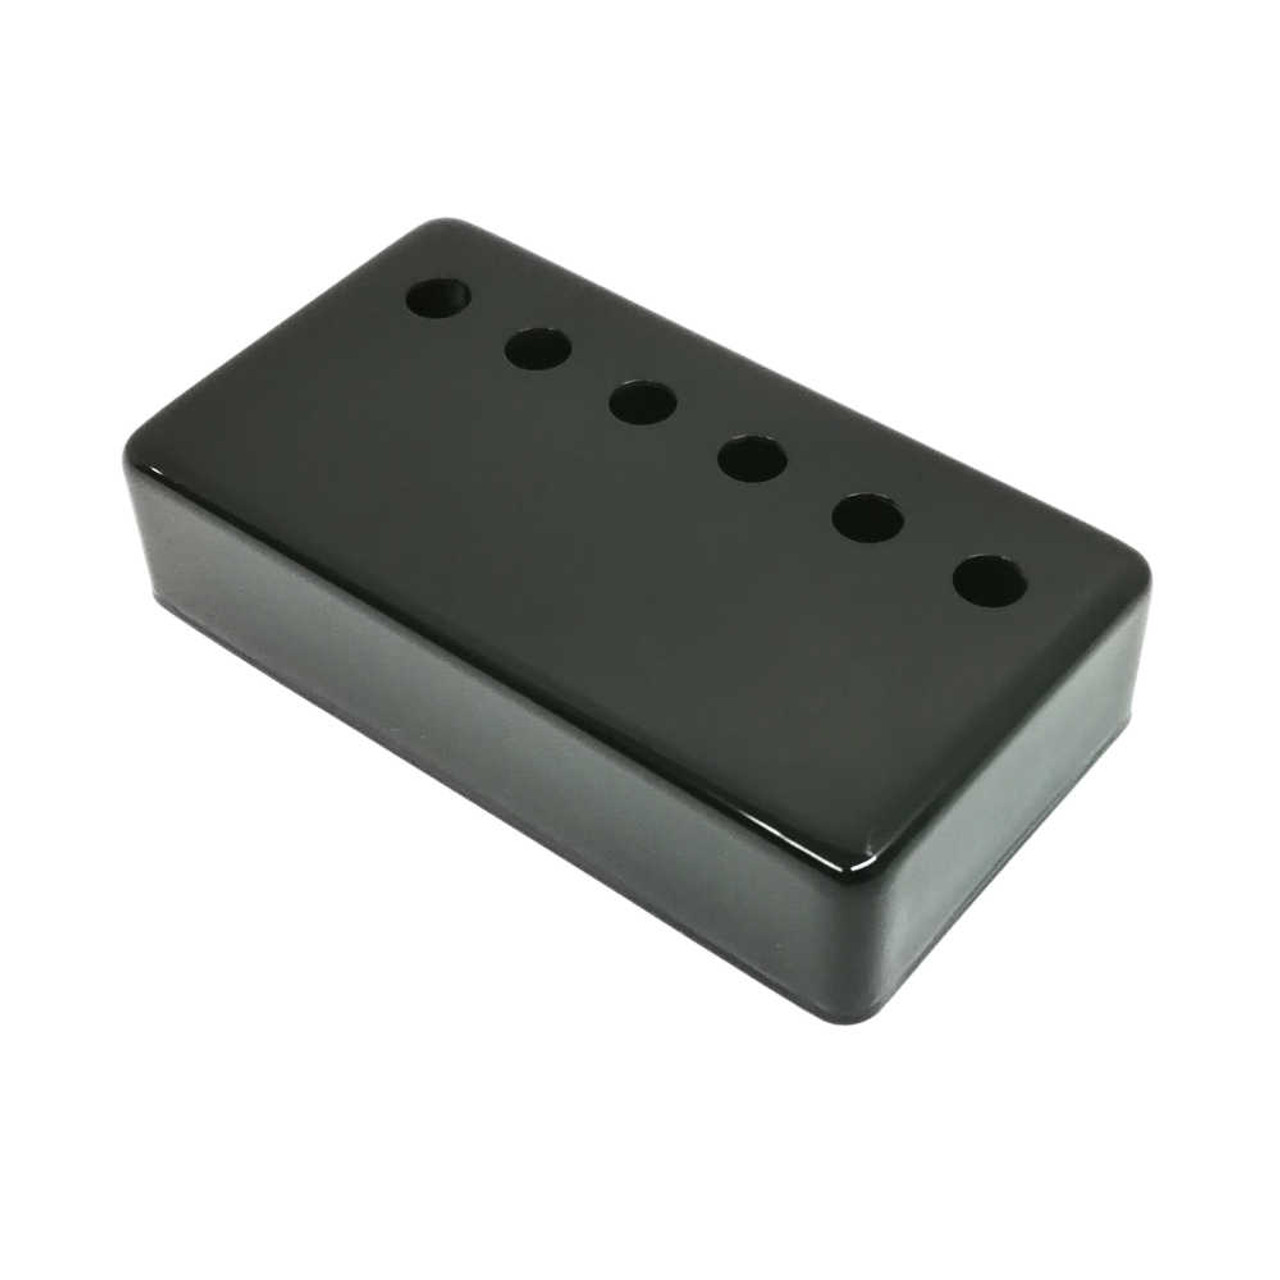 Humbucking Pickup Cover - 49.2mm Black (plated nickel/silver)